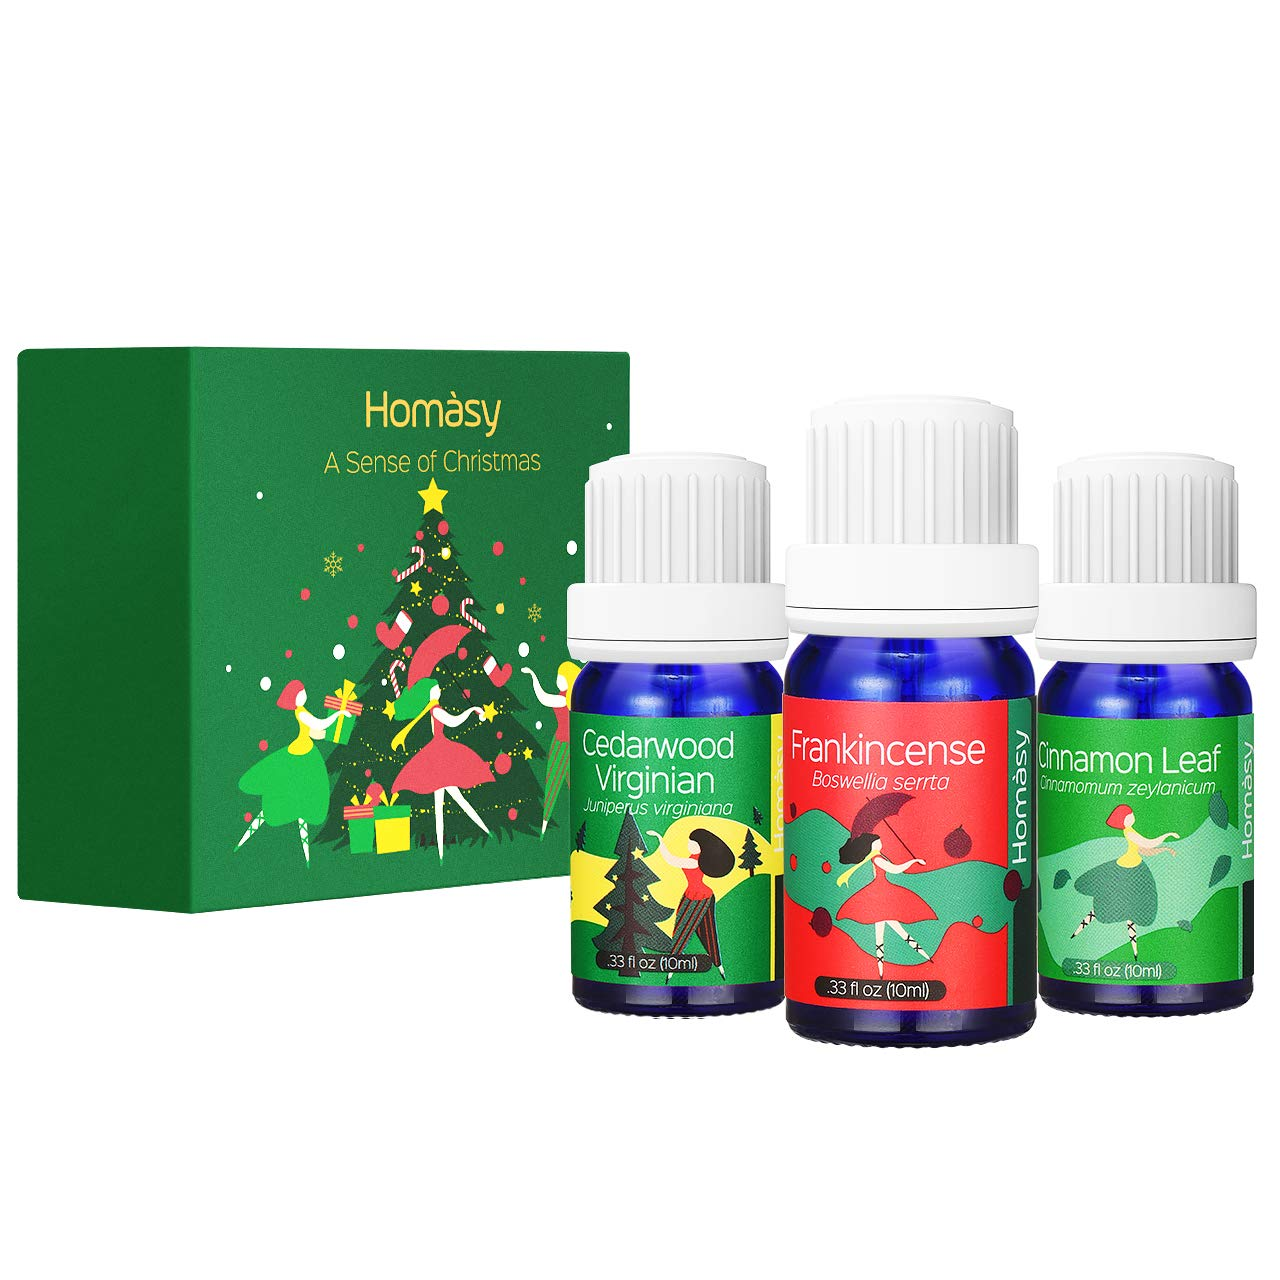 Homasy Aromatherapy Essential Oils Christmas Limited-edition Gift Set, 100% Pure Premium Therapeutic Grade Oils Kit (3 Bottles)